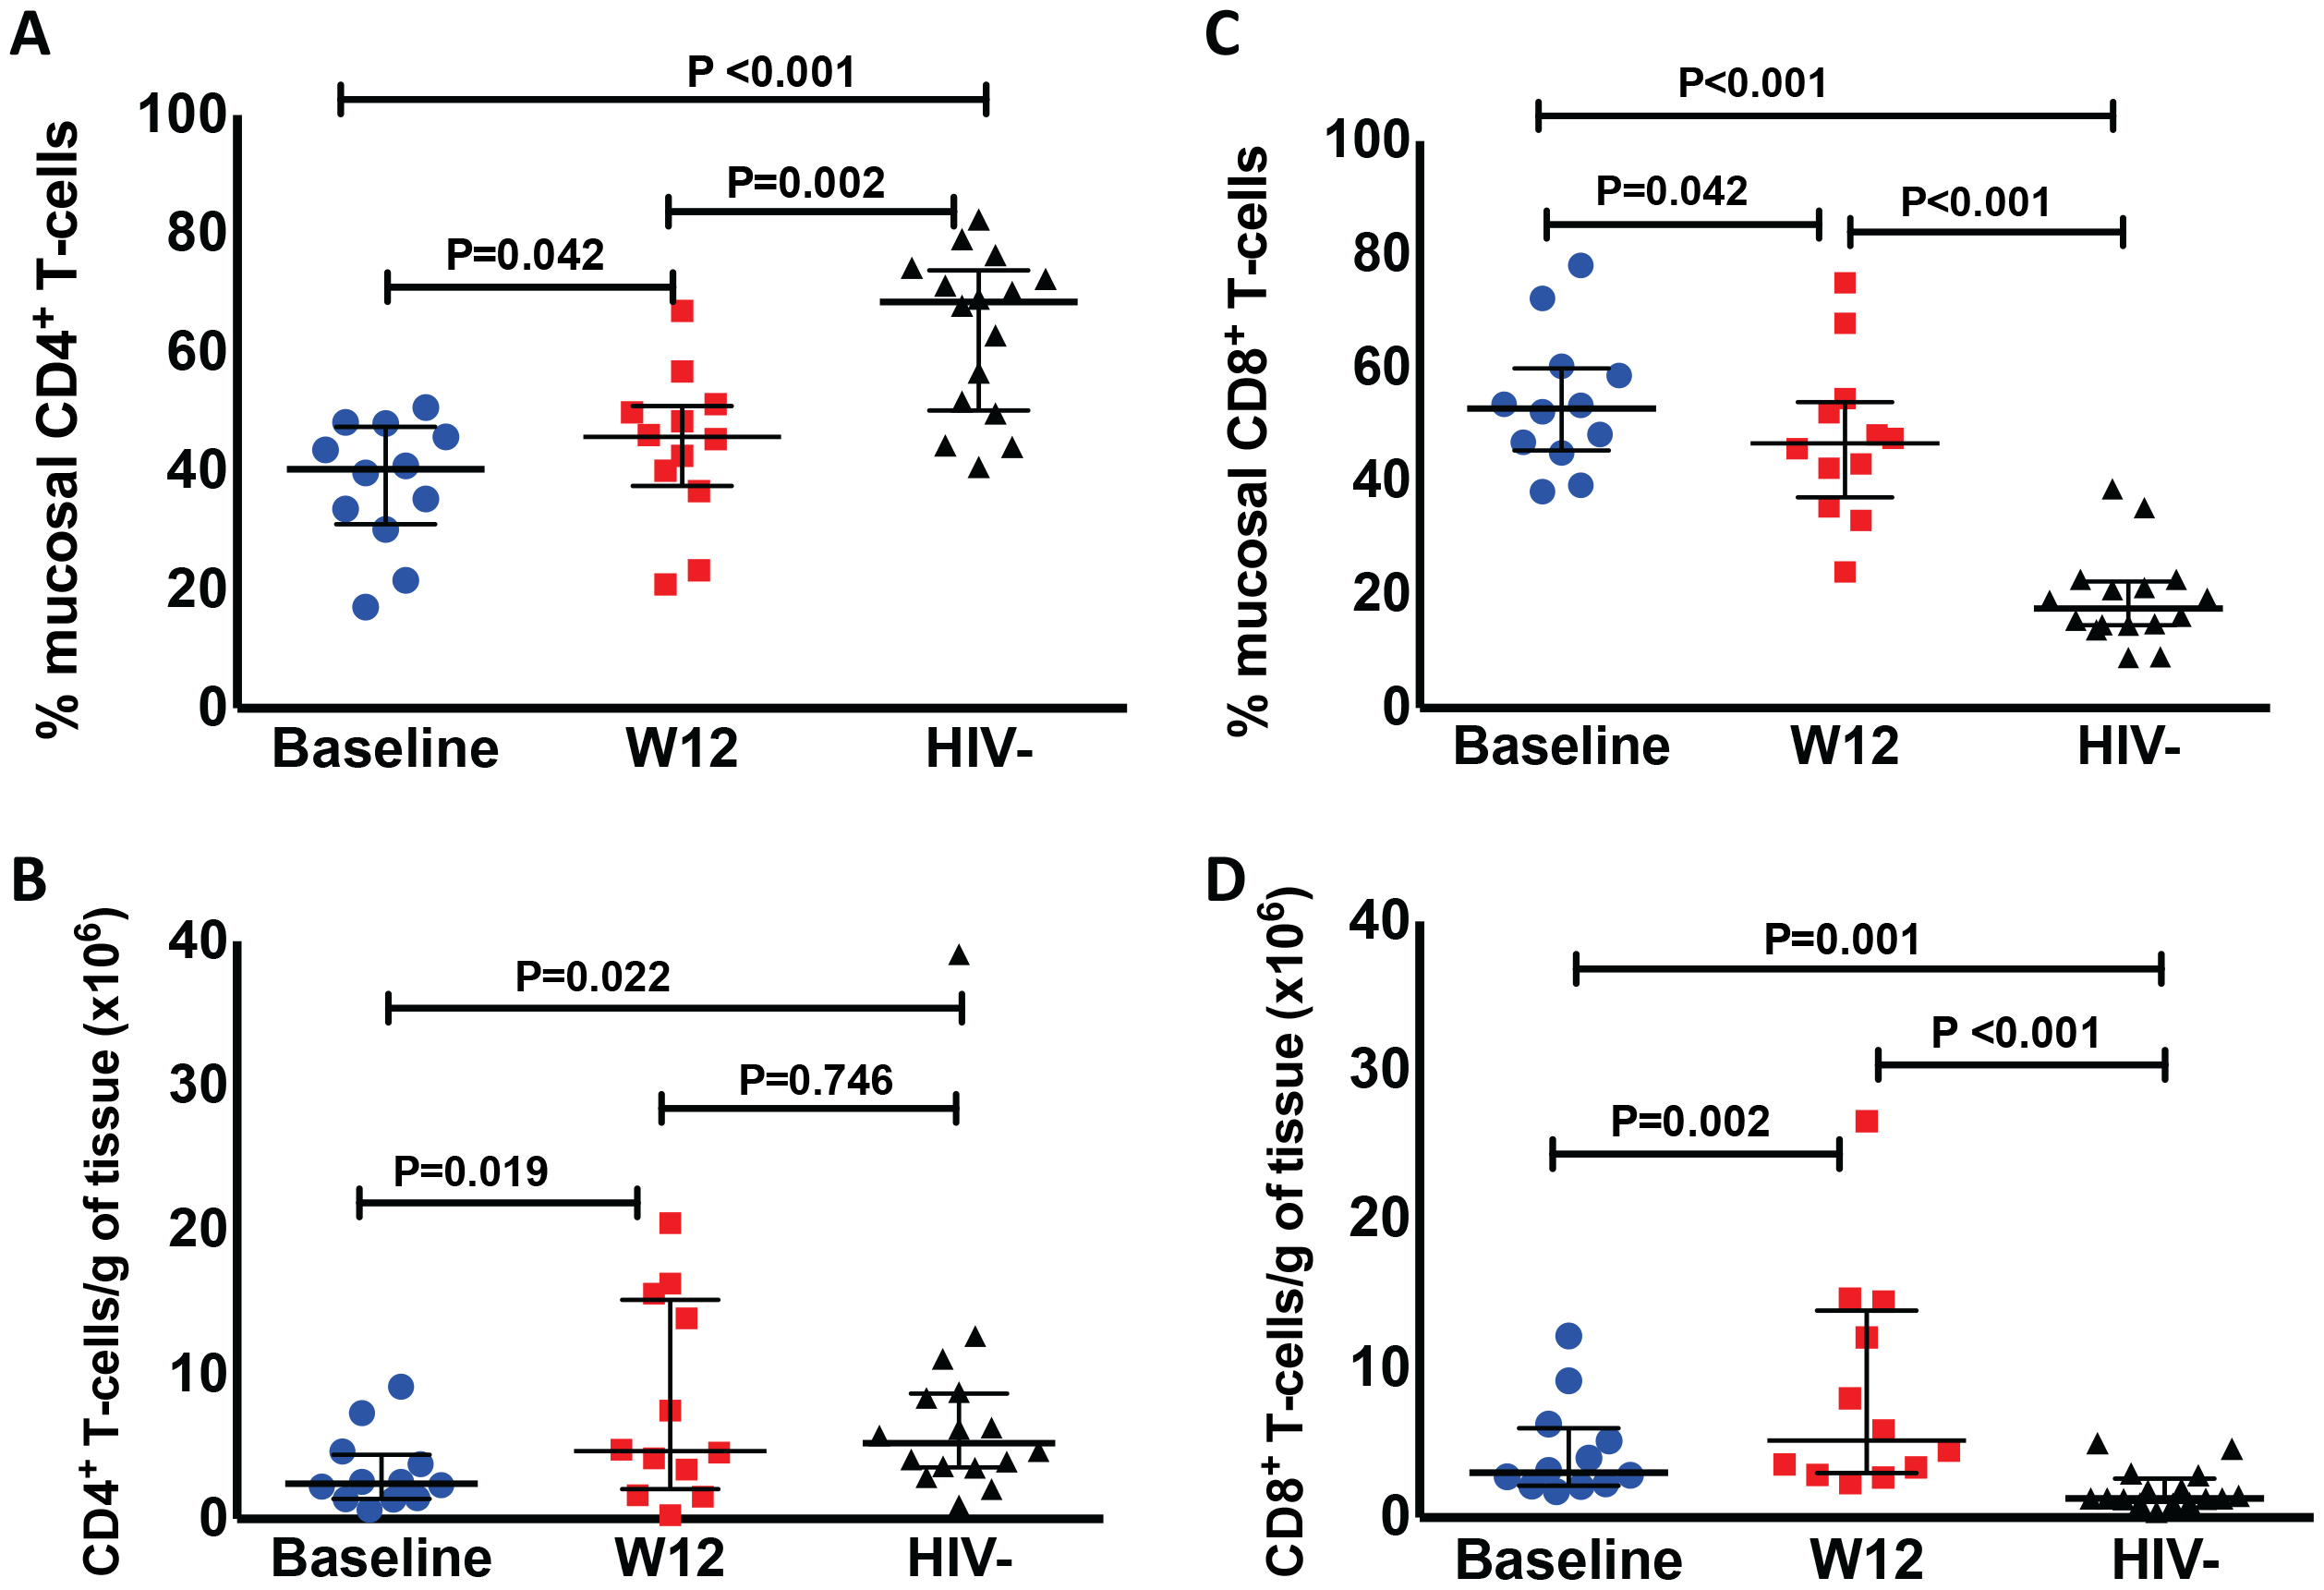 Administration of r-hIL-7 leads to increases in gut mucosal T-cells.